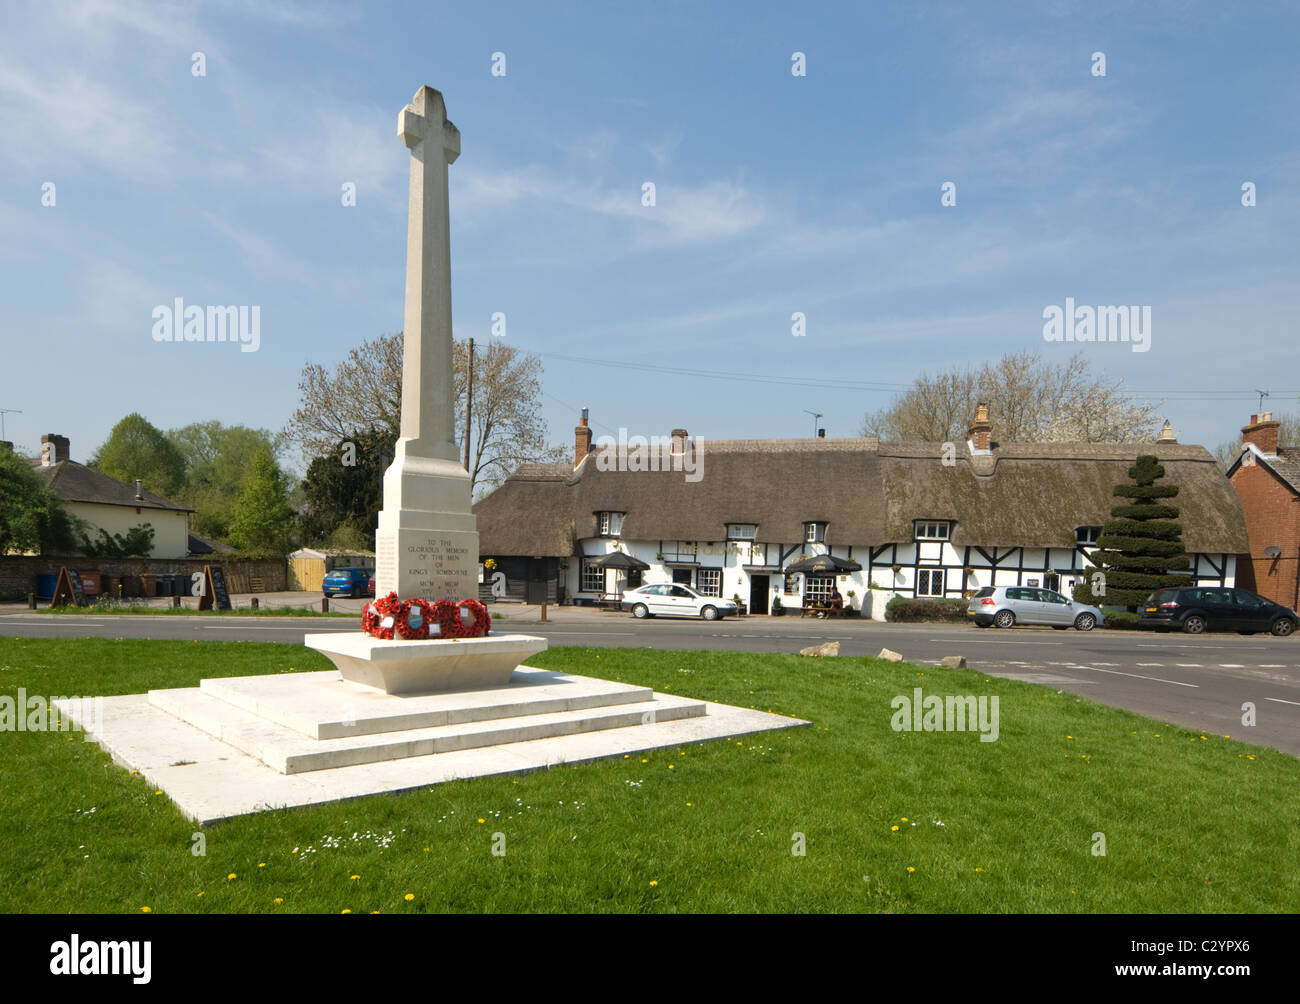 View of the village green in picturesque King's Somborne, Test Valley, Hampshire, UK Stock Photo